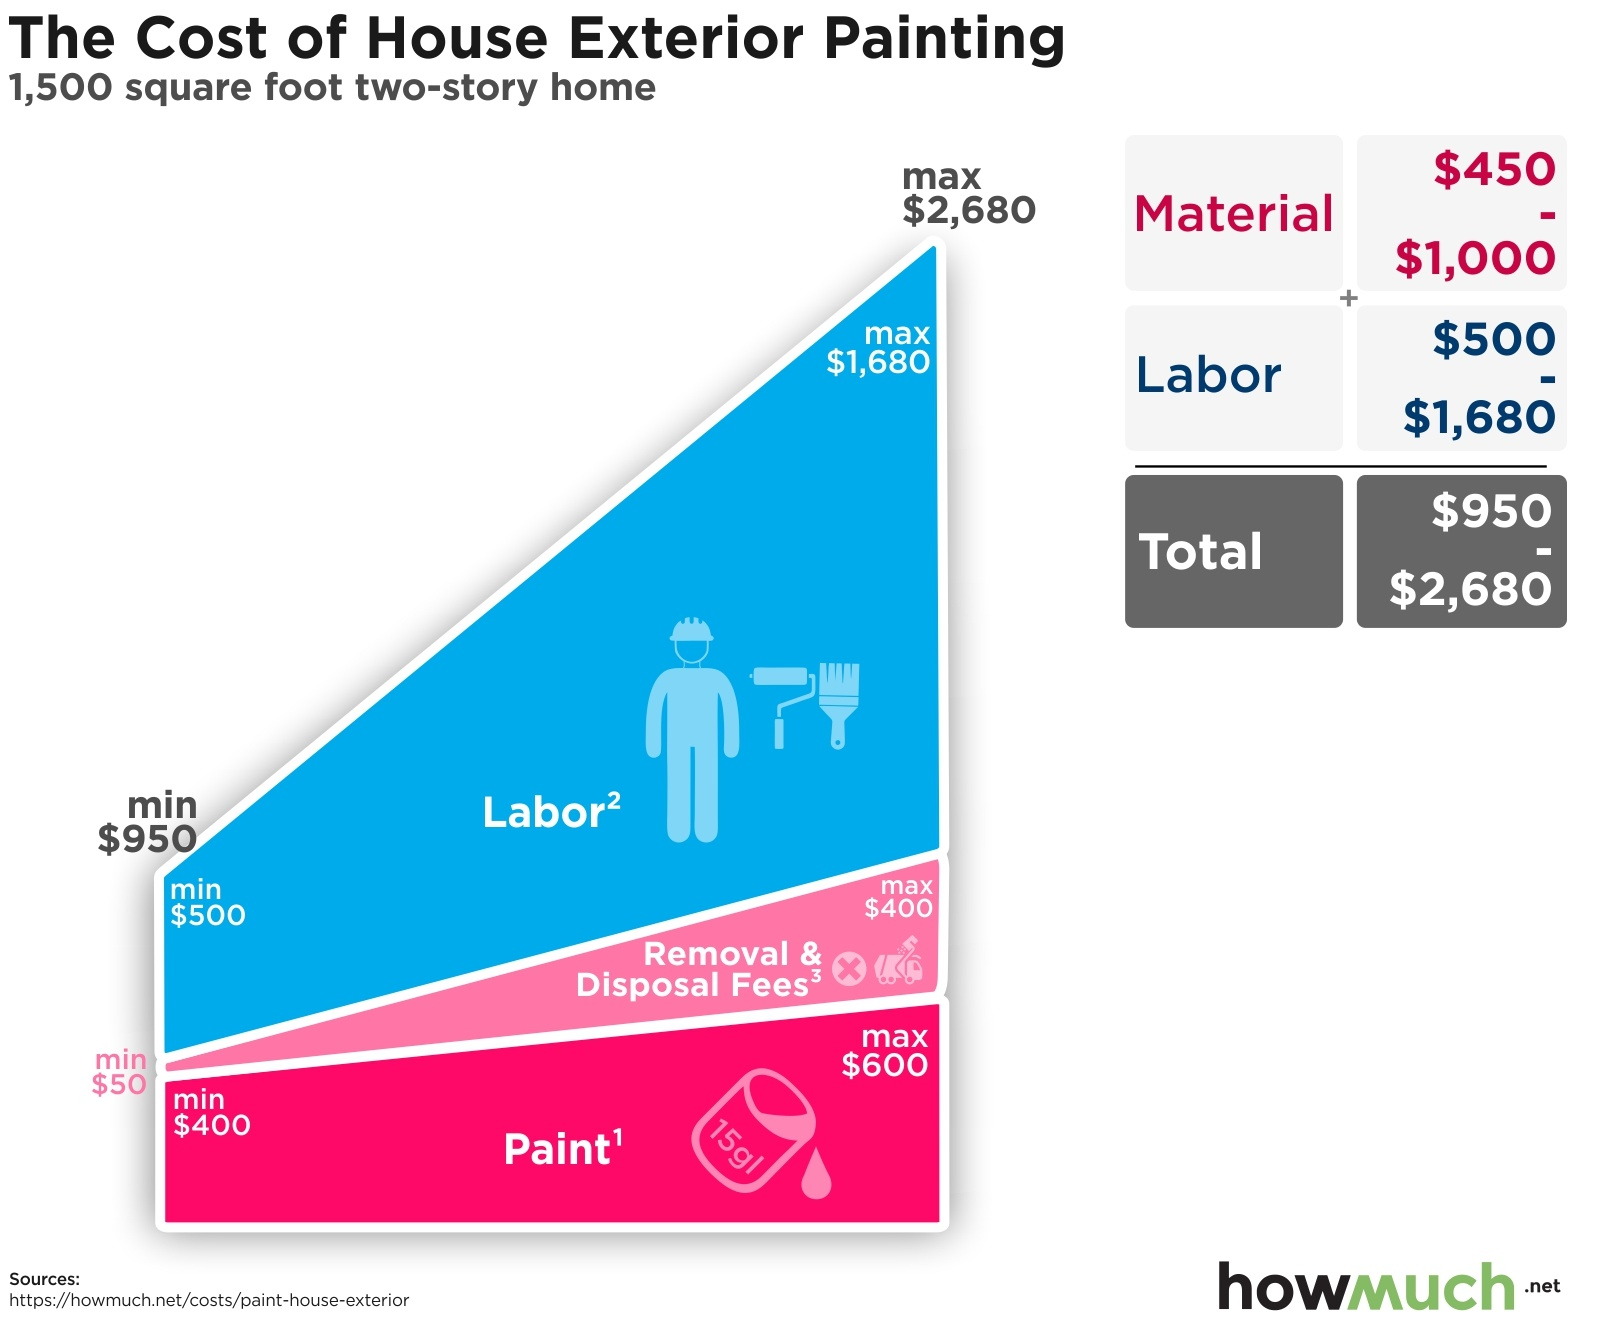 The Cost of House Exterior Painting